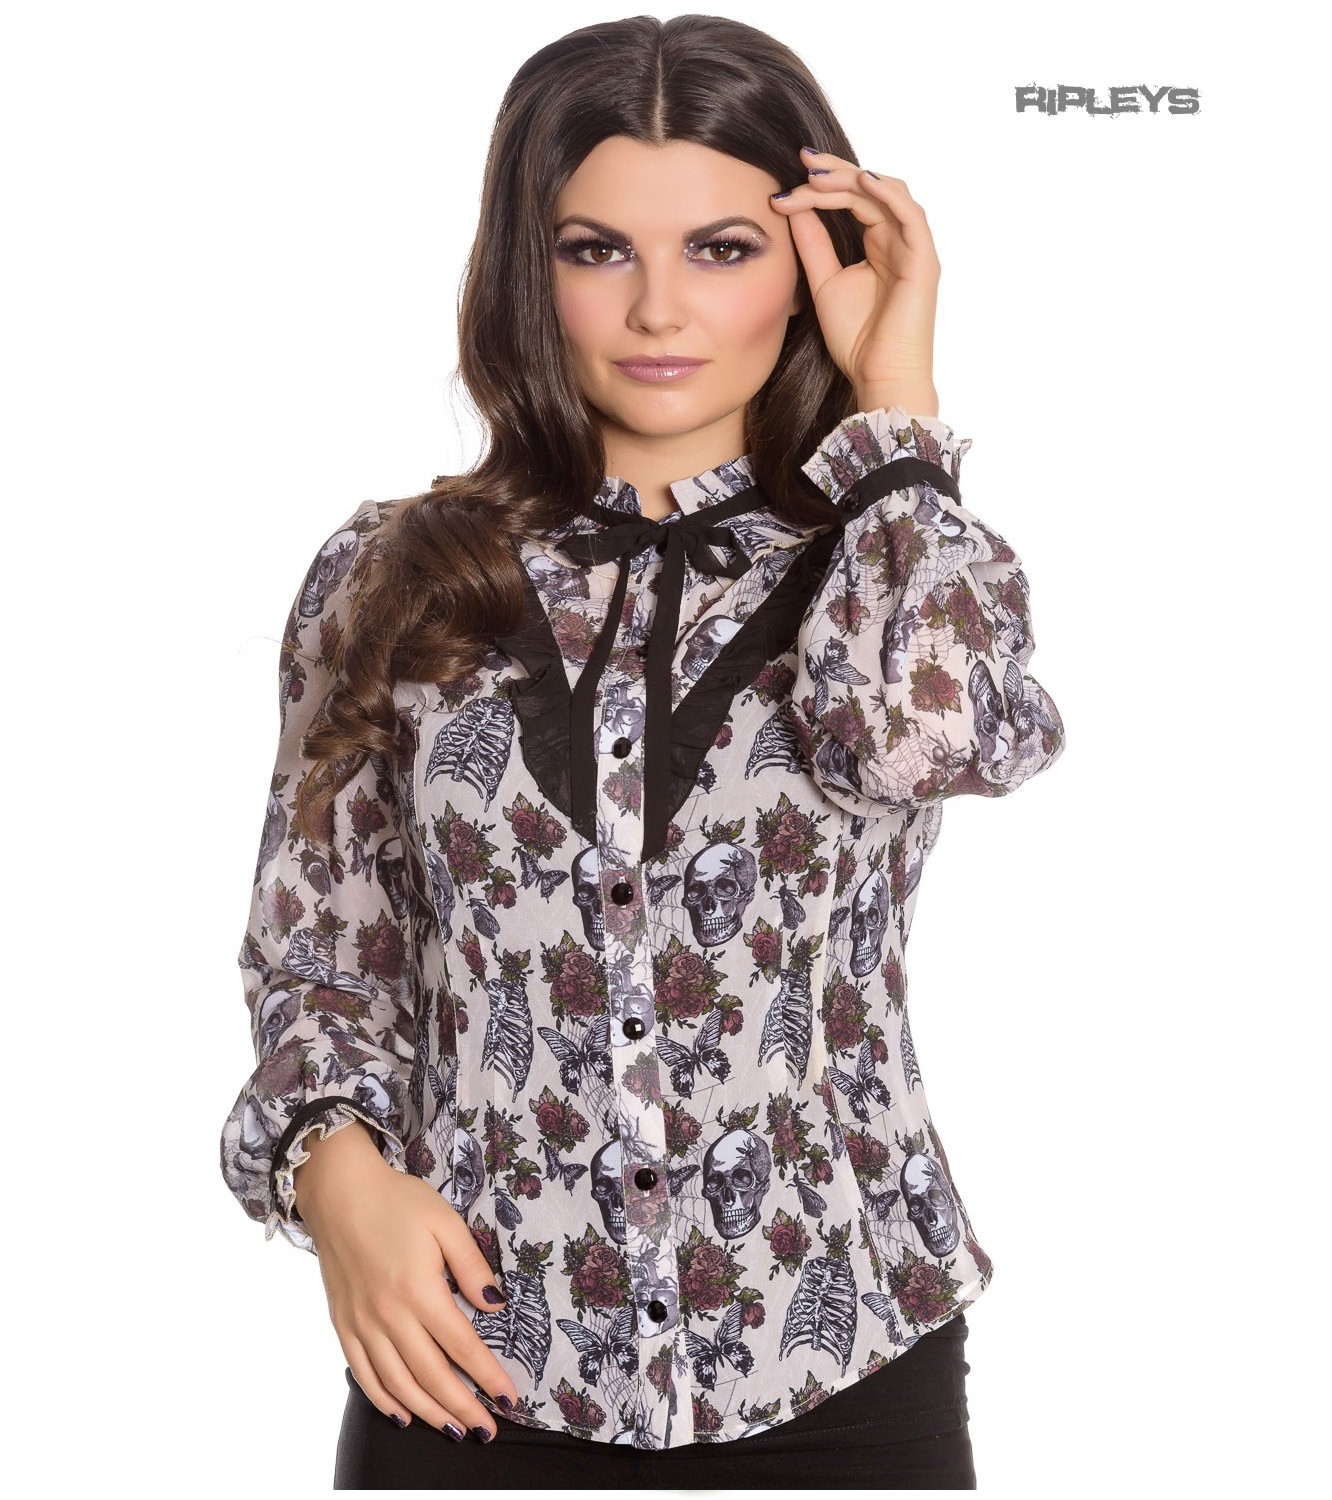 Hell-Bunny-Chiffon-Shirt-Top-Gothic-Skulls-Roses-GRISELDA-Blouse-Ivory-All-Sizes thumbnail 2